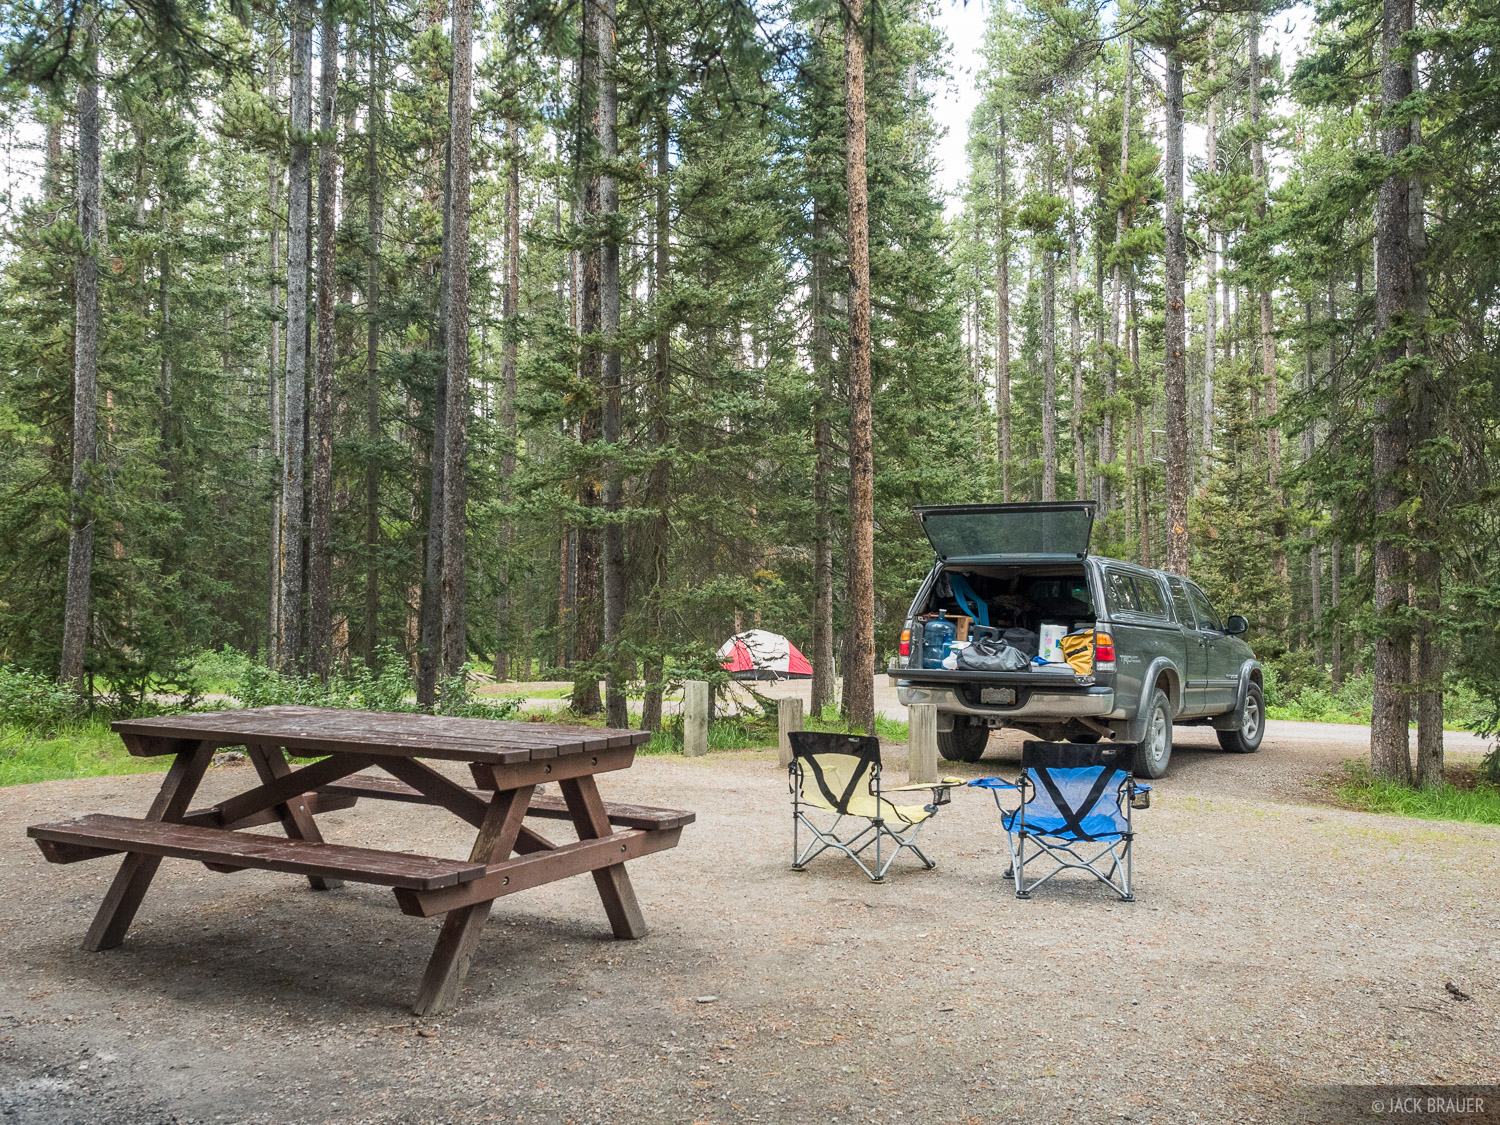 From Banff we were fortunate to book online literally the last available campsite at Lake Louise Campground, where we stayed...